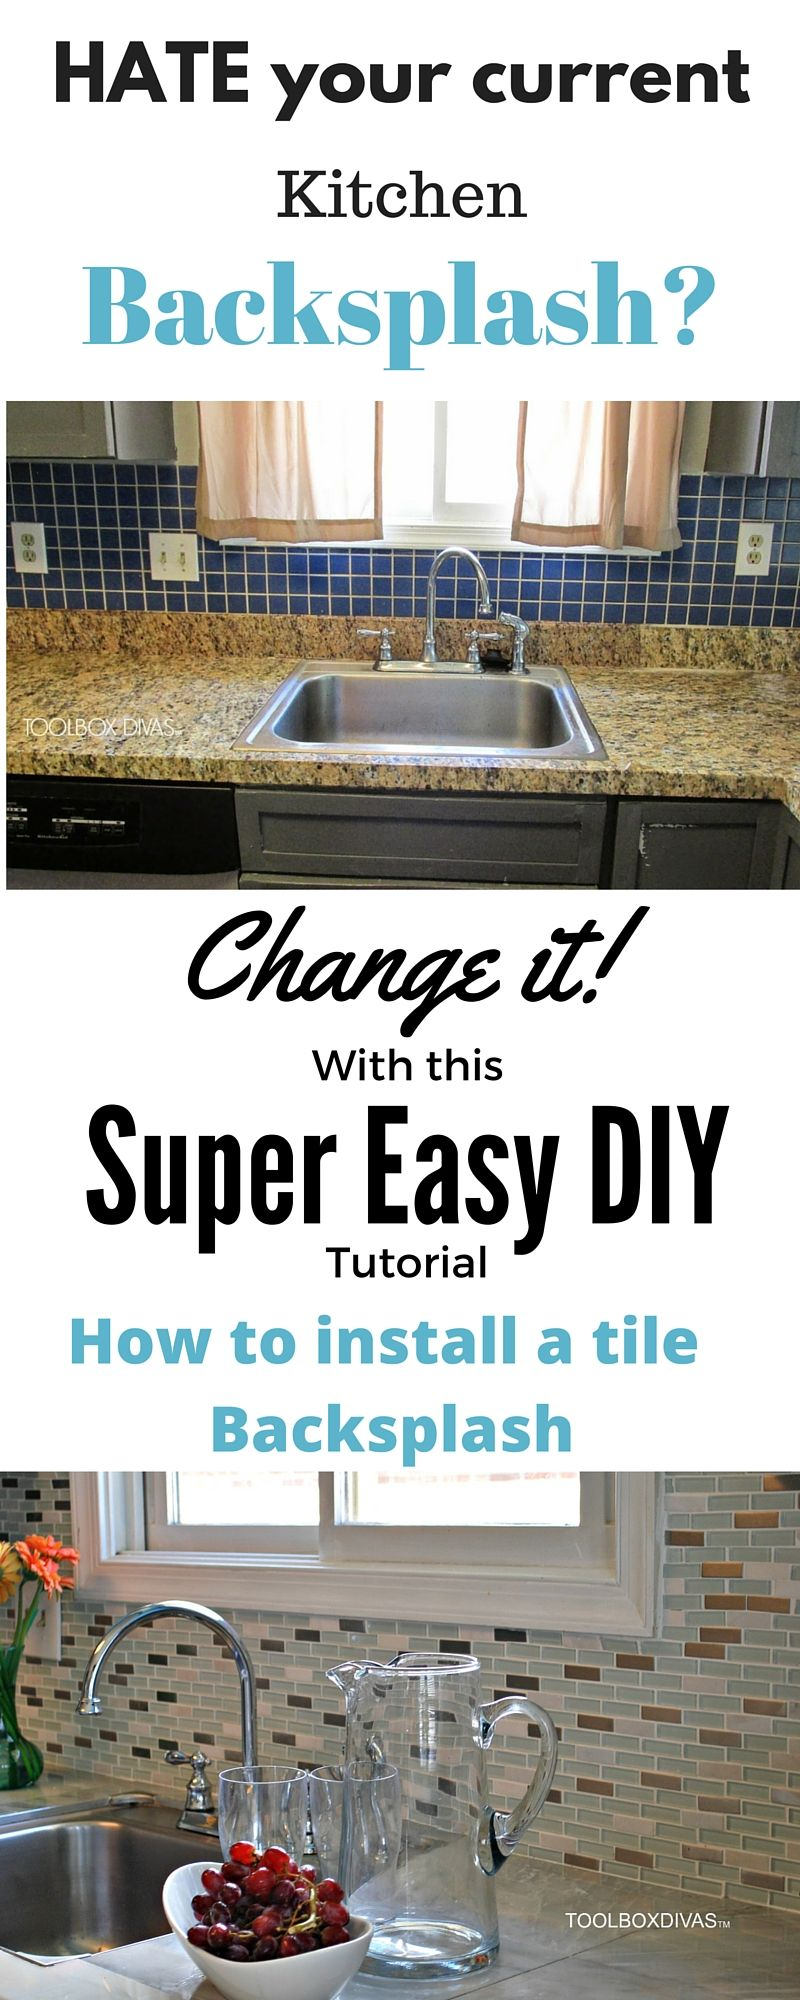 How To Install A Kitchen Tile Backsplash The Easy Way Diy